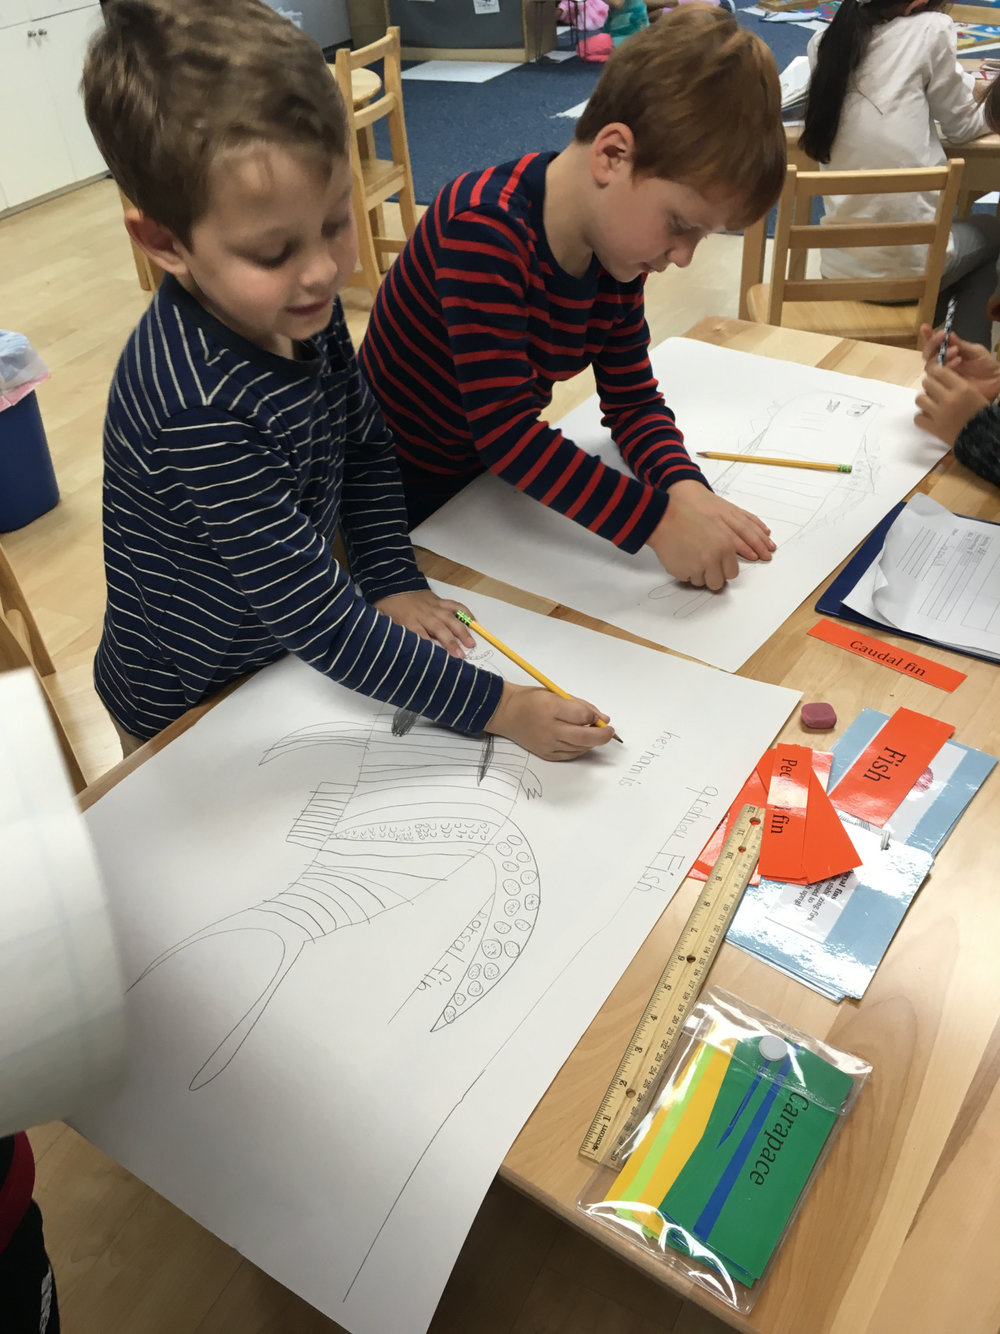 As part of their Zoology curriculum, the Lower Elementary West first grade students received a lesson about parts of fish.  The students recorded and labeled the fish parts on poster board and then had the option to color or paint their finished product.